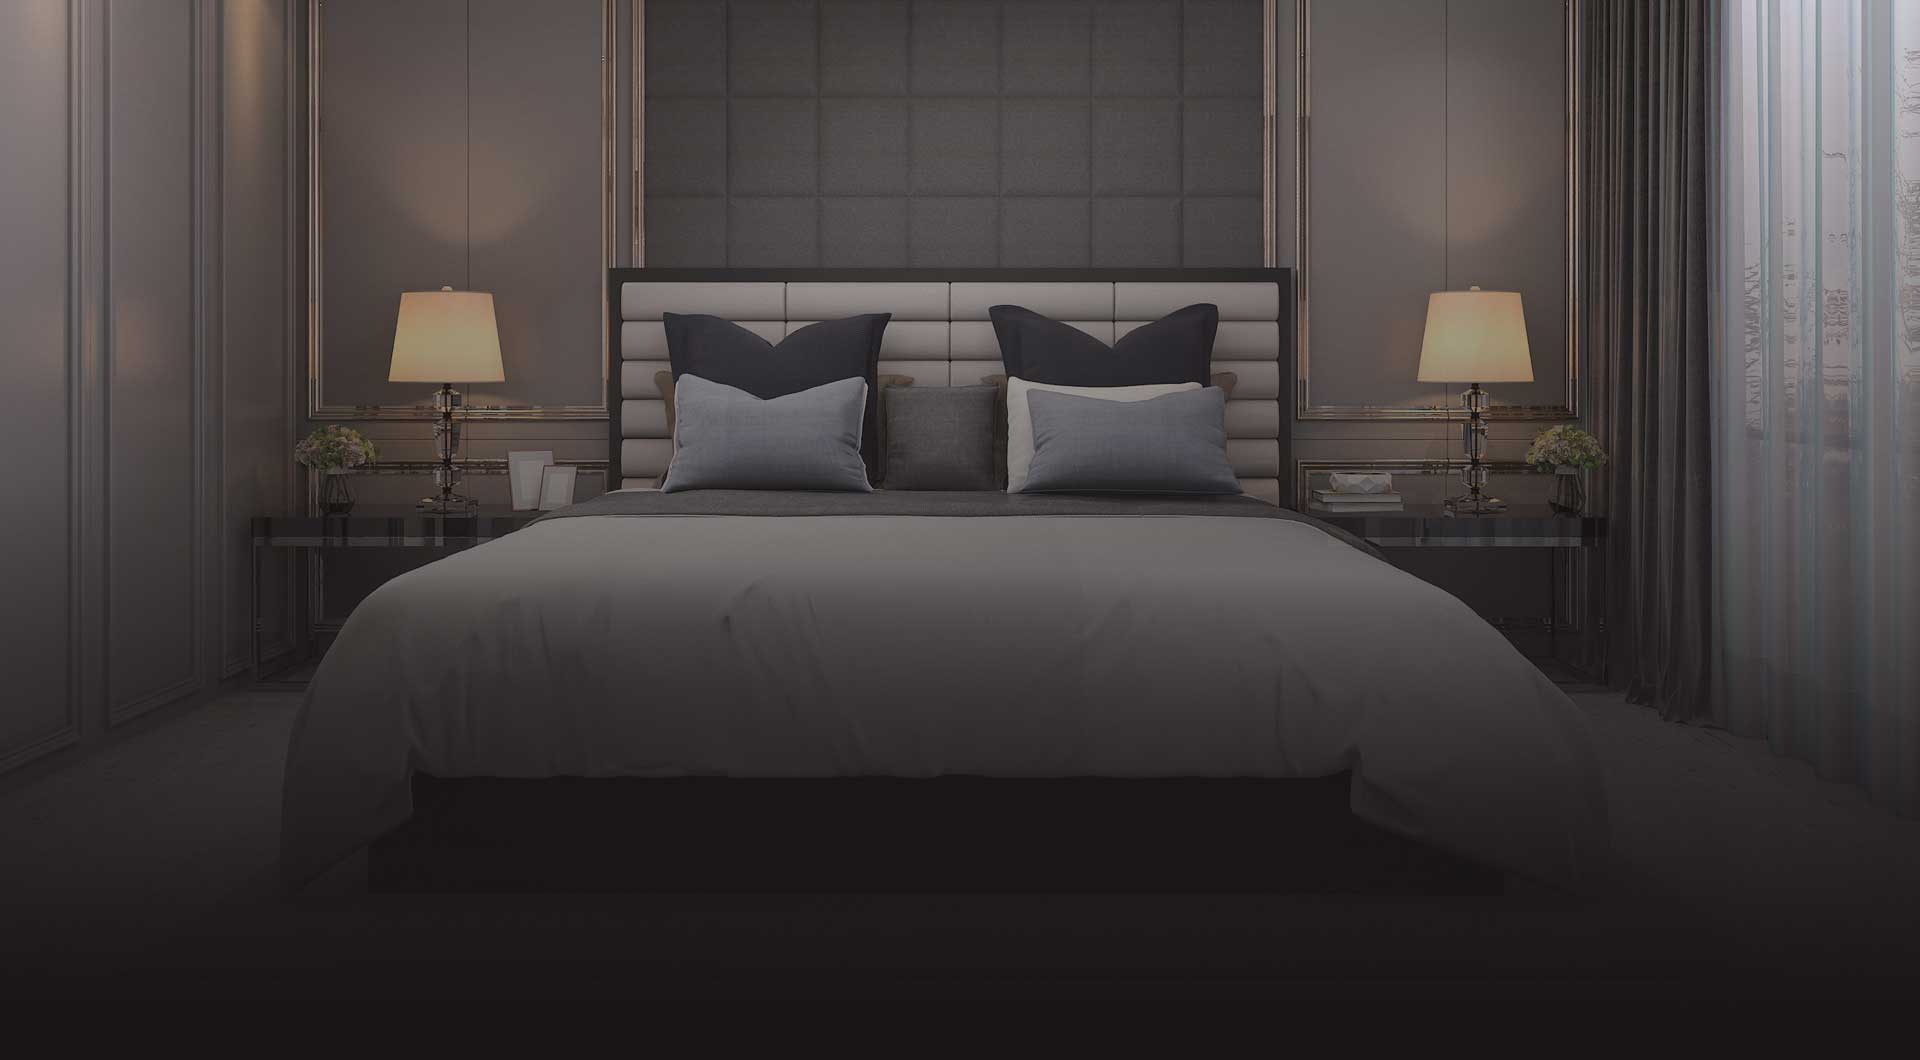 Rendering of The Howard High Park interior bedroom.